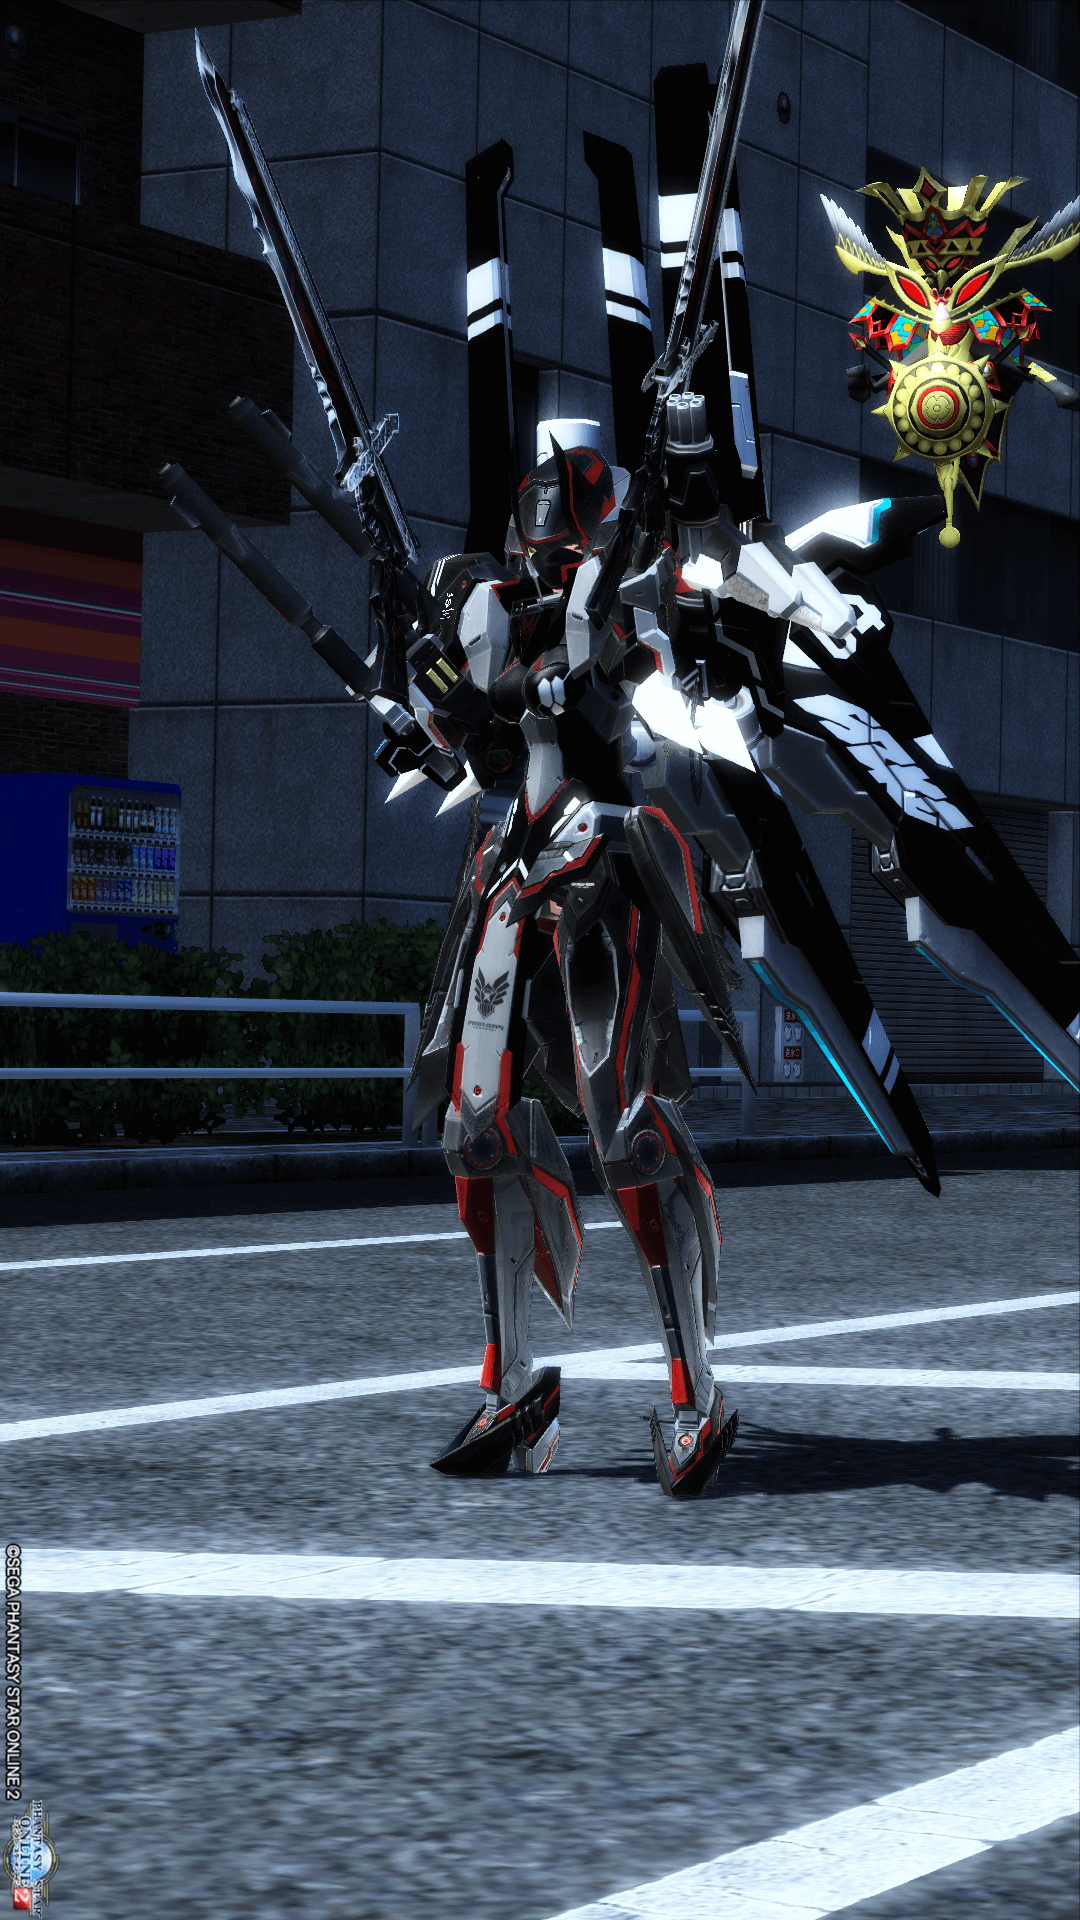 pso20160205_035339_012.png